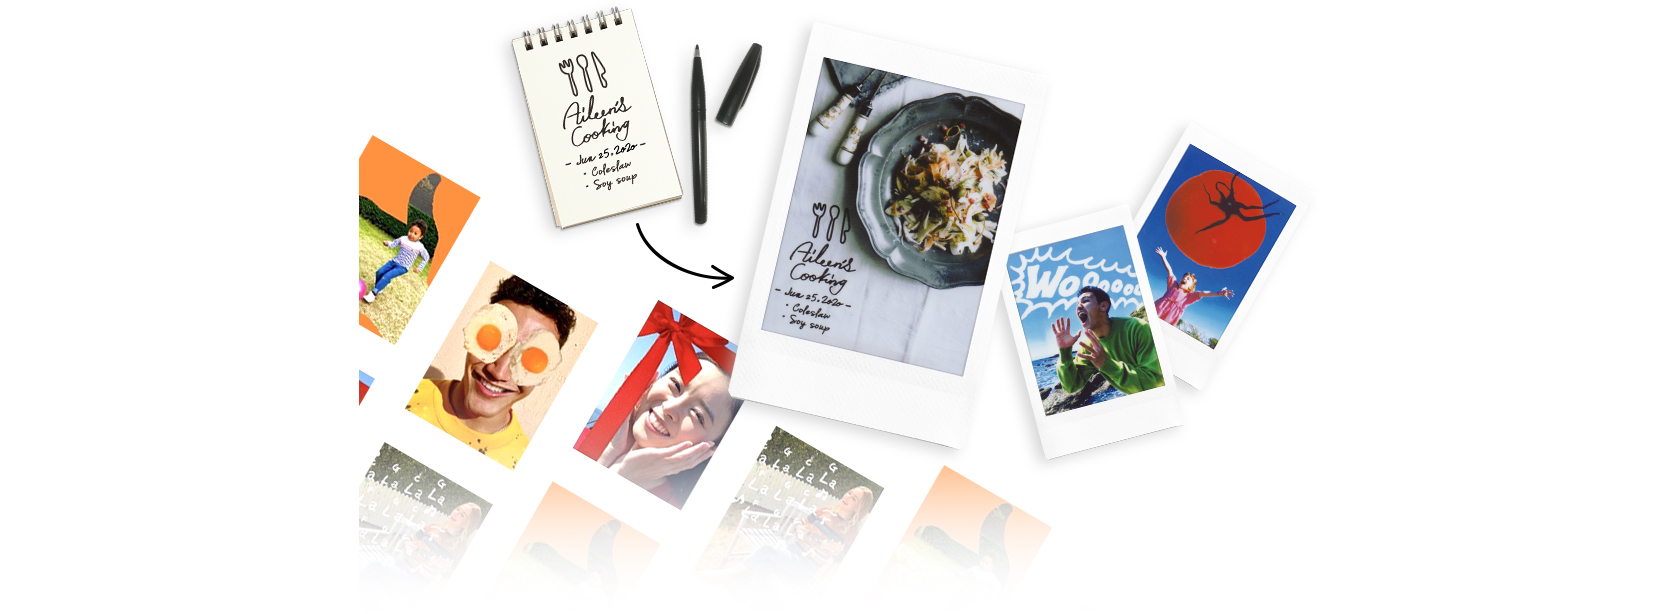 [photo] Various, colorful photos spread out on table and text added to photo prints